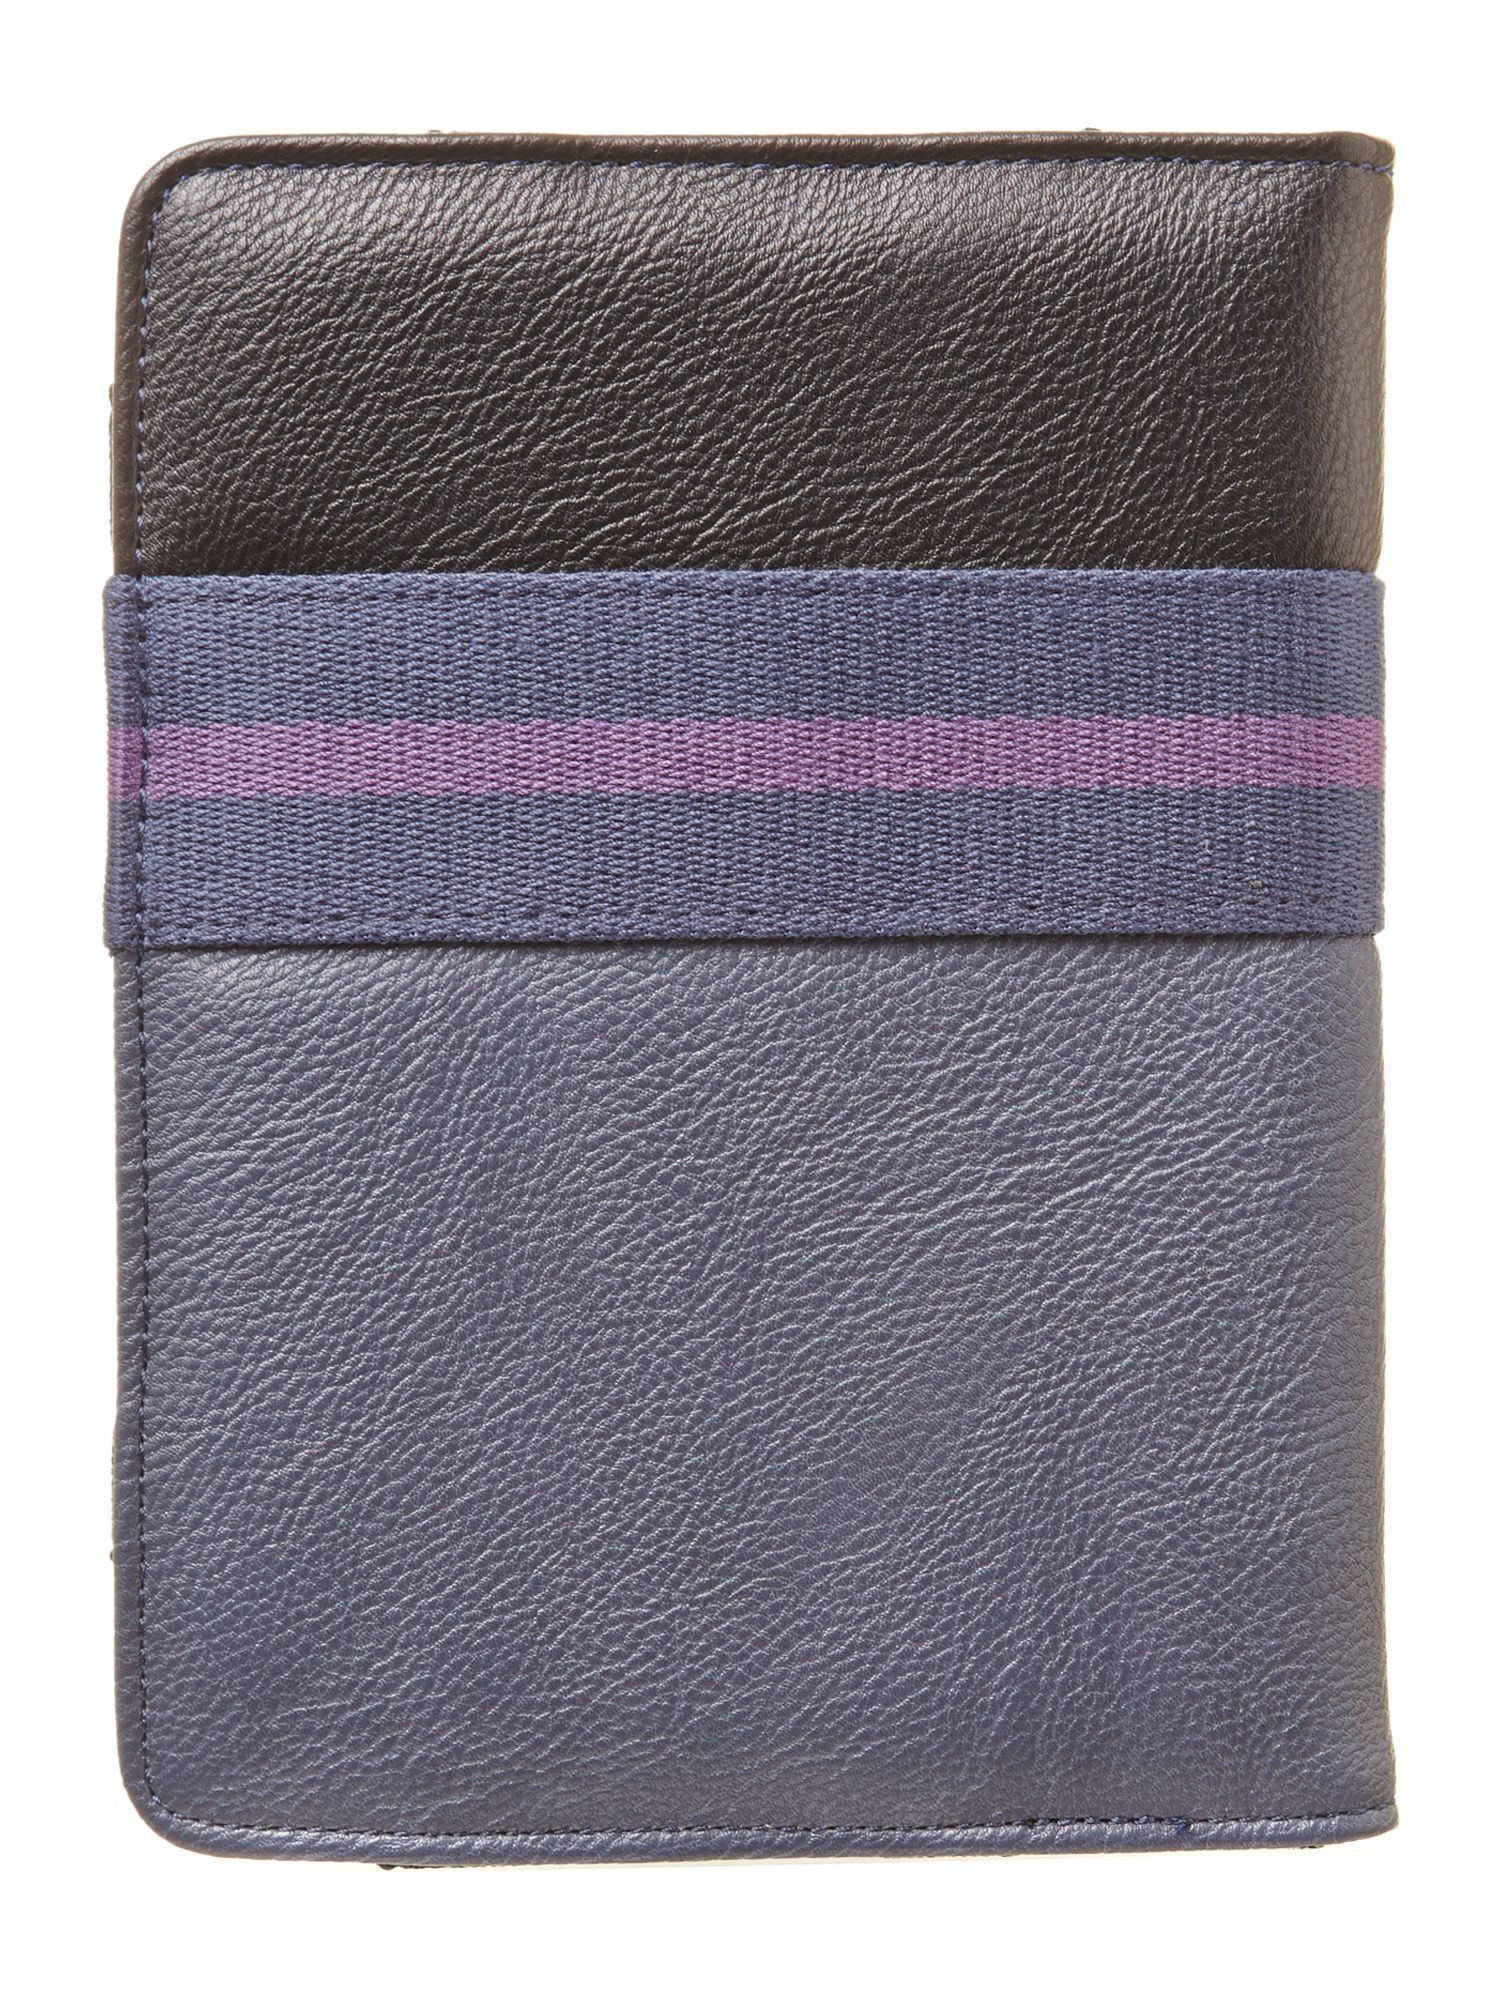 Inlay stripe tablet case